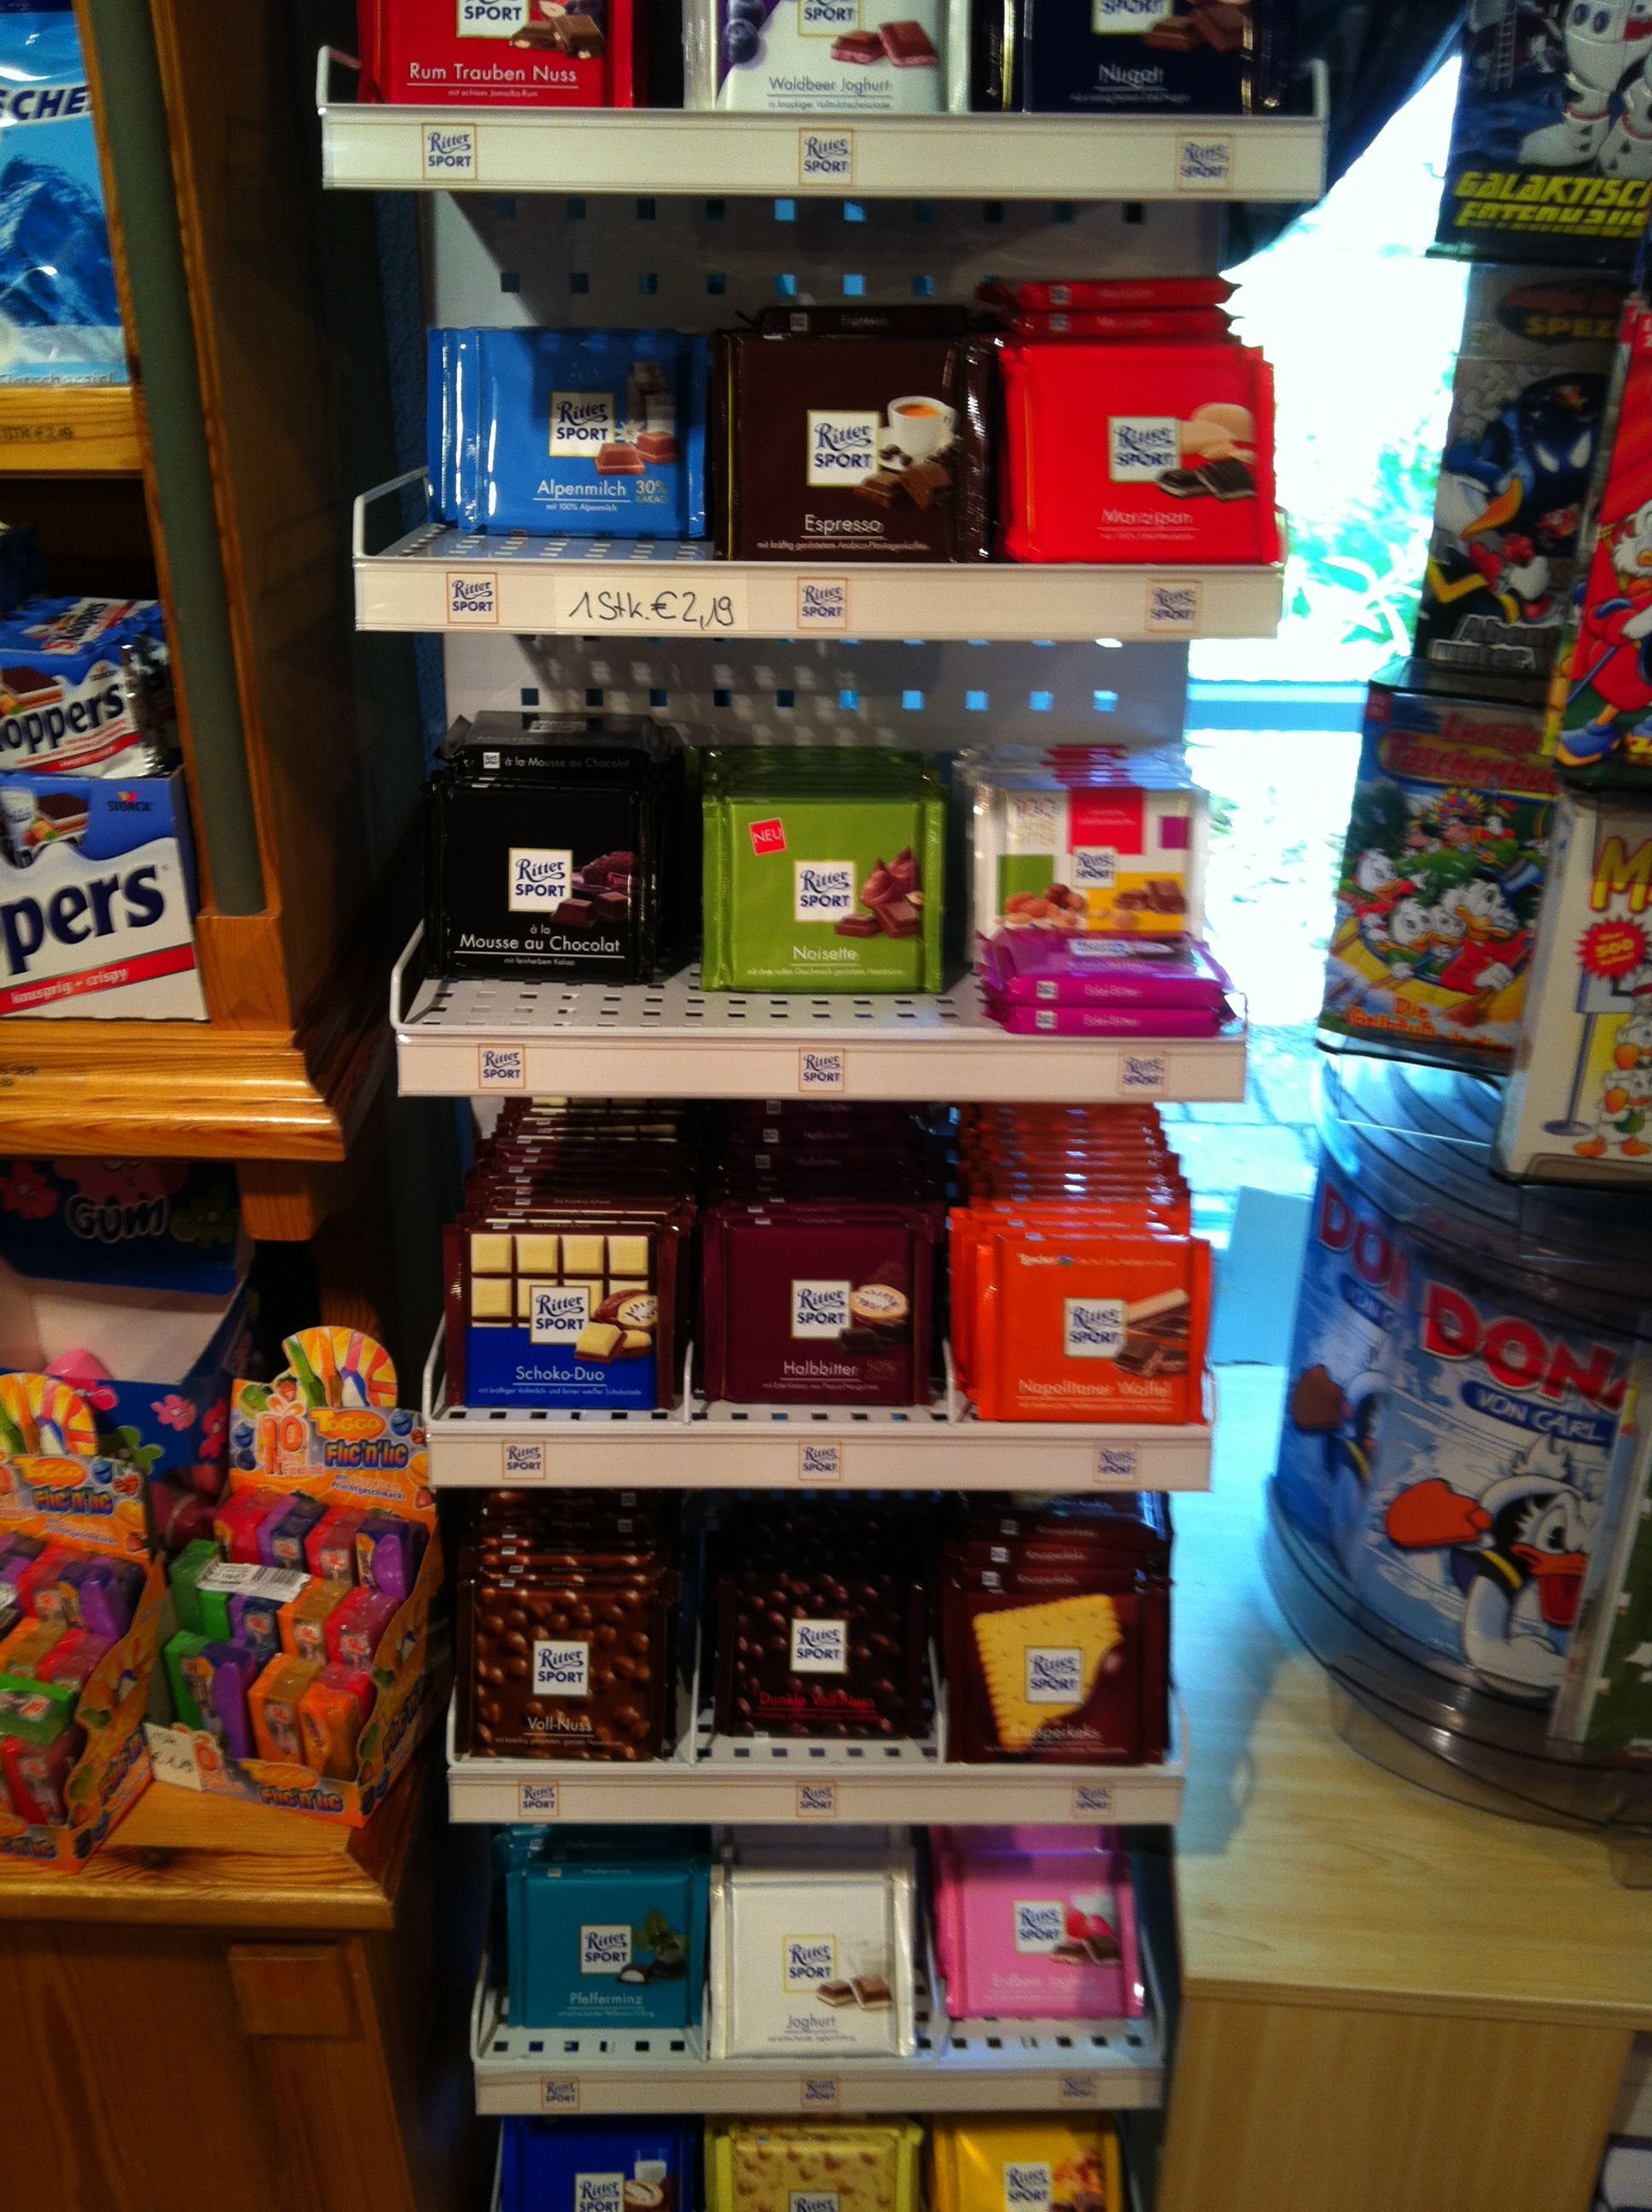 CHOCOLATE. Ritter Sport! Gaming products, Arcade games